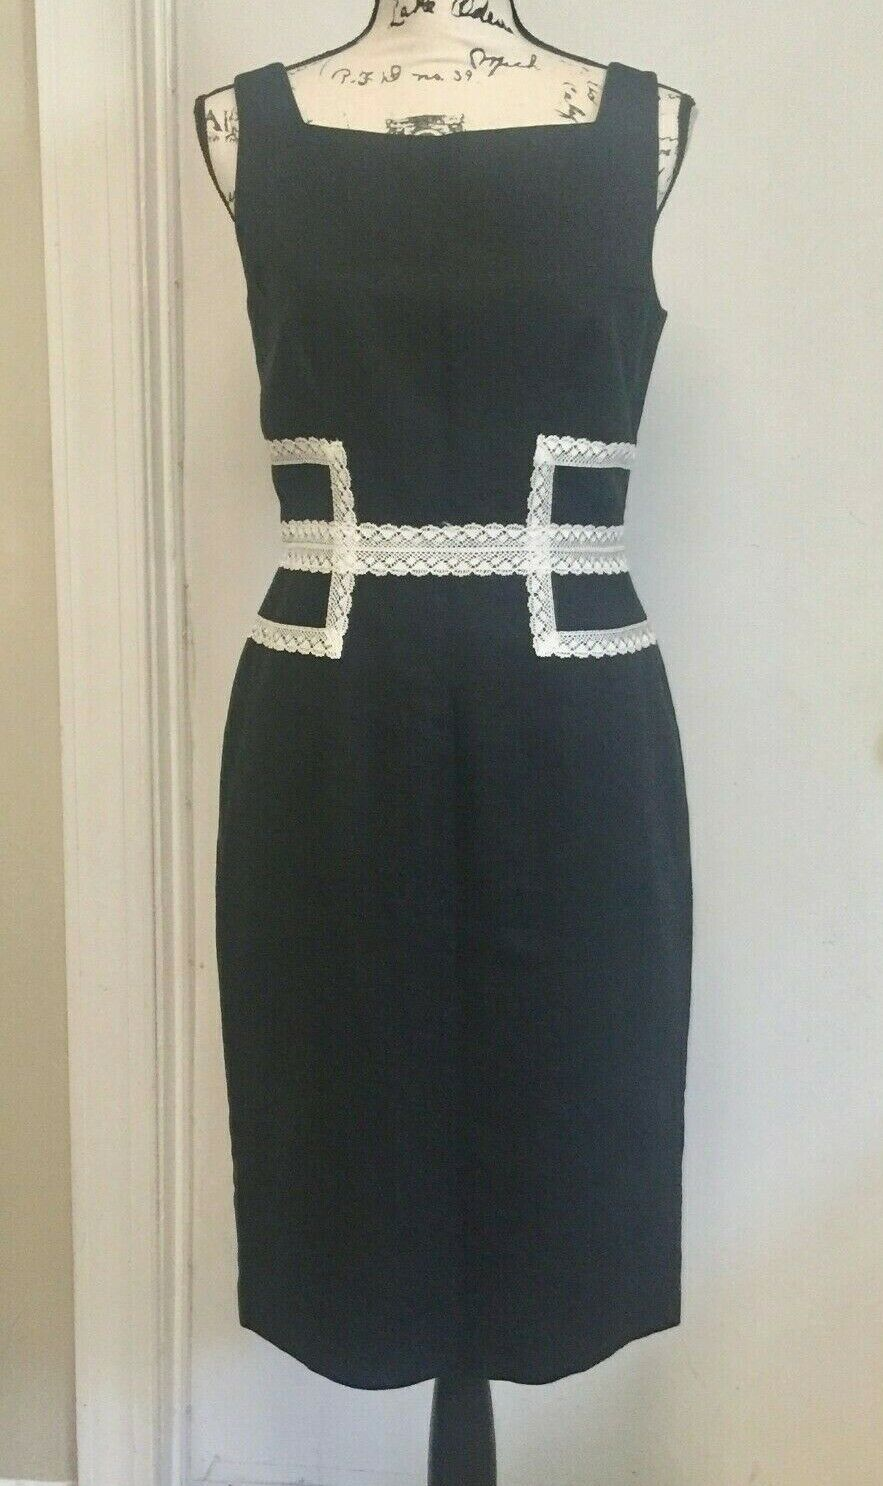 DAVID MEISTER Black Sheath Dress Sleeveless Linen blend Lace Waist Size 6 Lined